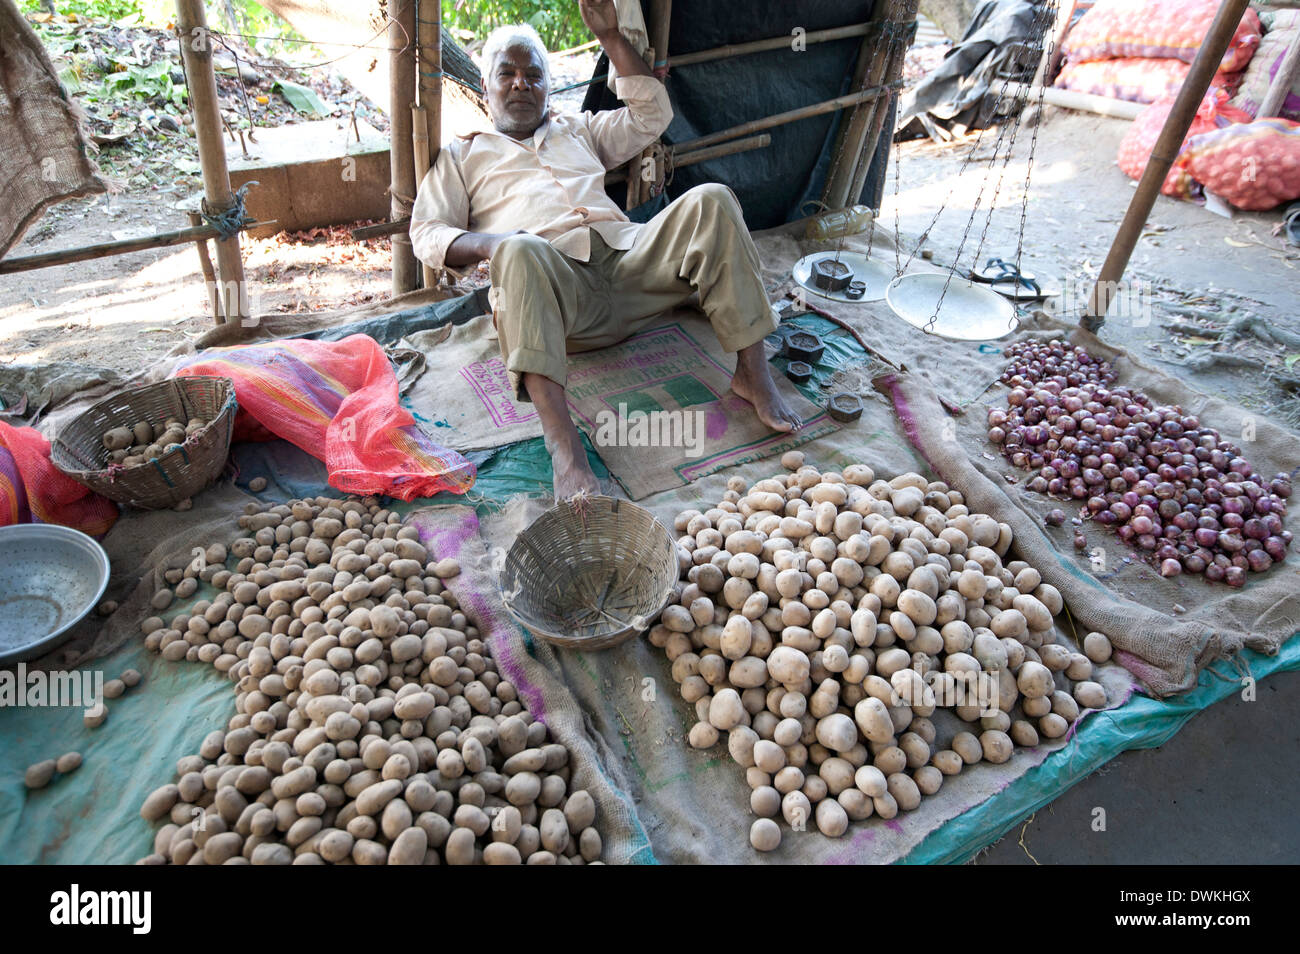 Aloo wallah (potato seller) relaxing with his locally grown potatoes at his market stall, Guwahati, Assam, India, Asia - Stock Image